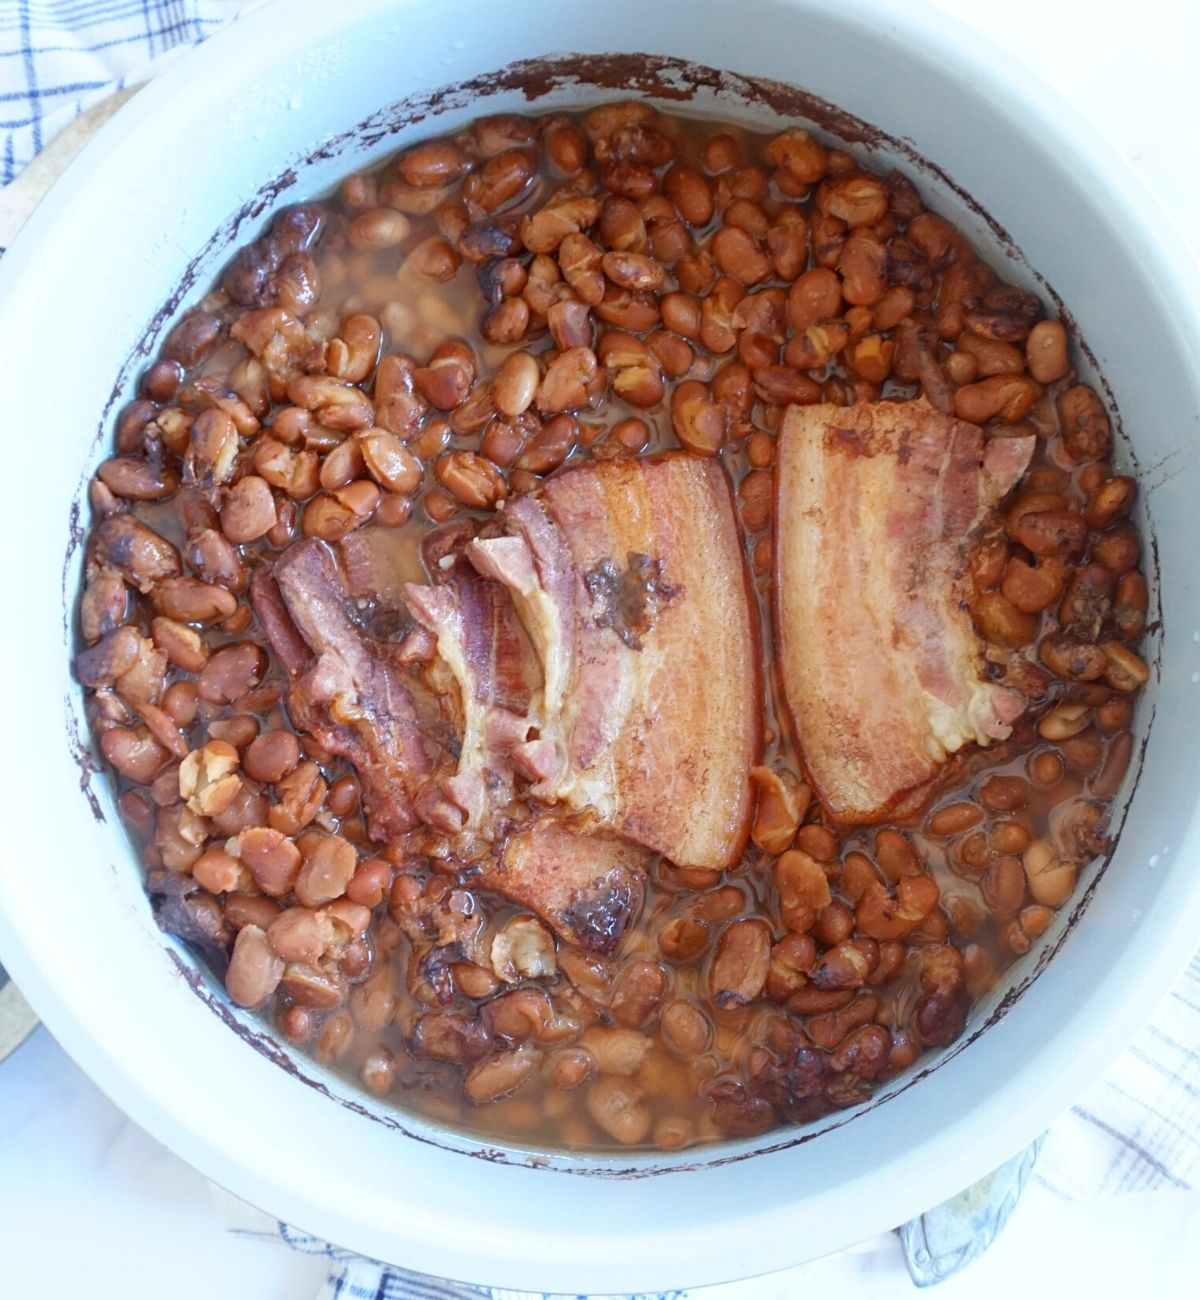 cooked soup beans in pressure cooker pot